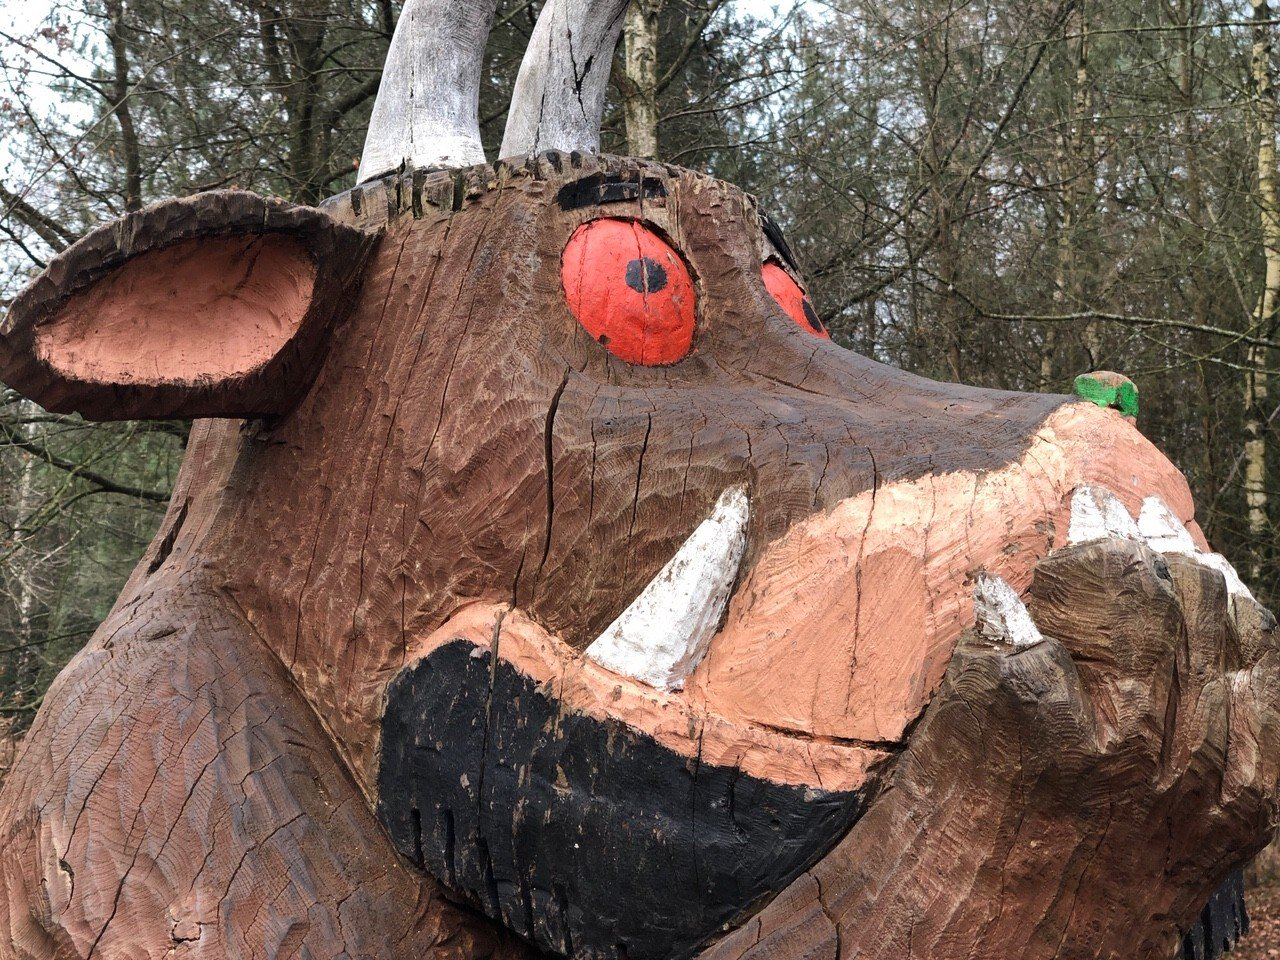 Alice Holt Forest, Gruffalo Sculptures